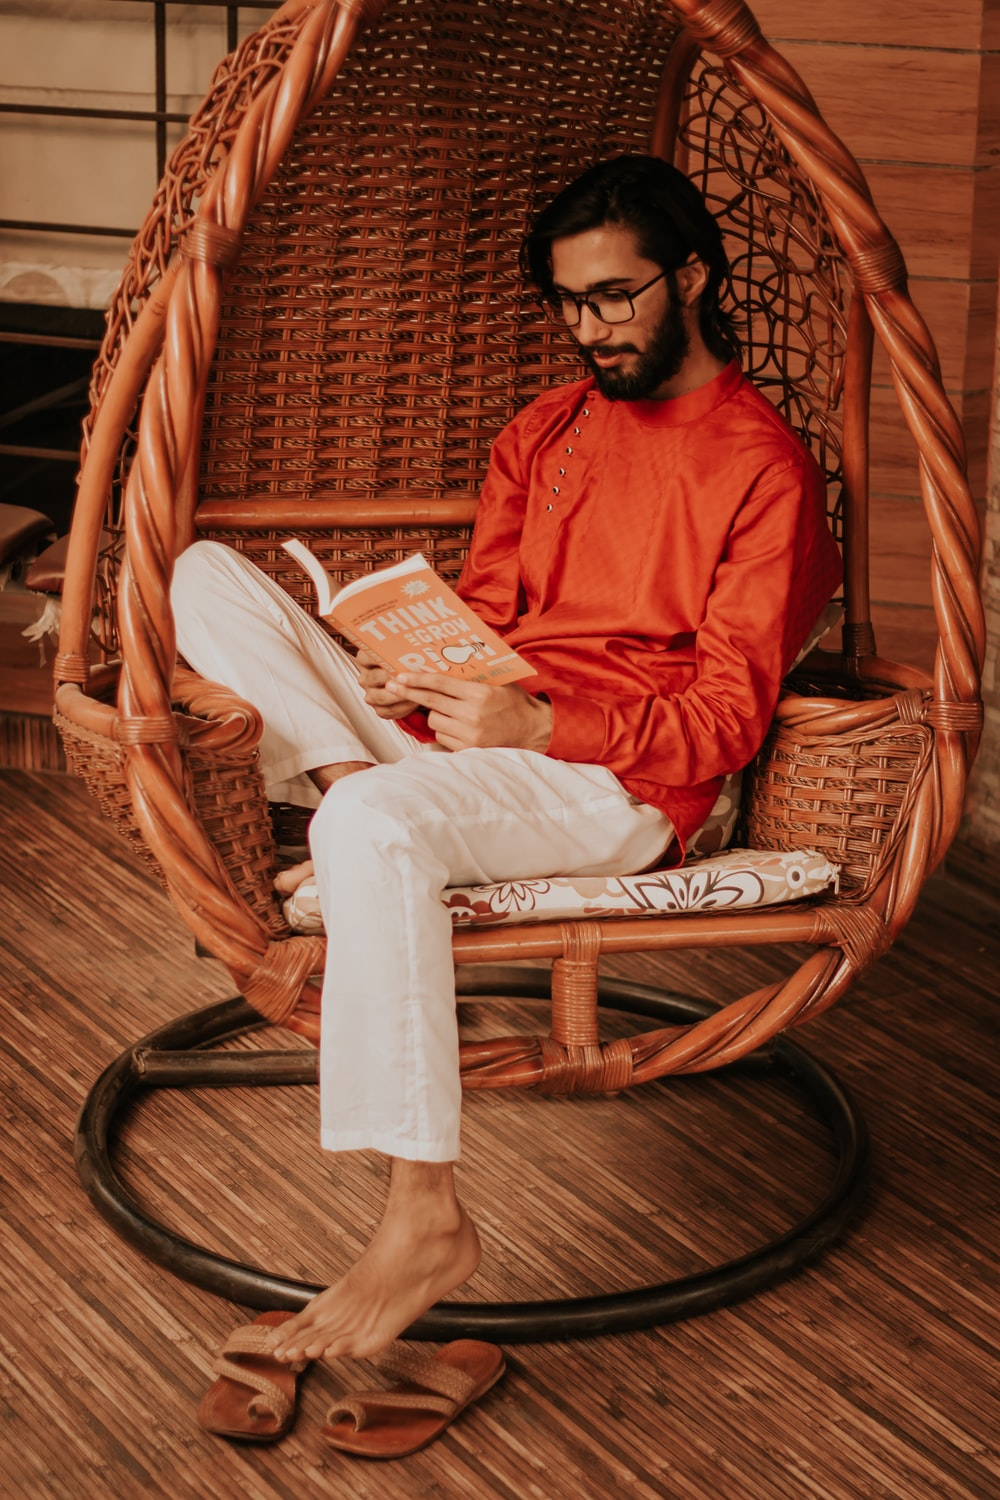 man in red long sleeve shirt reading book